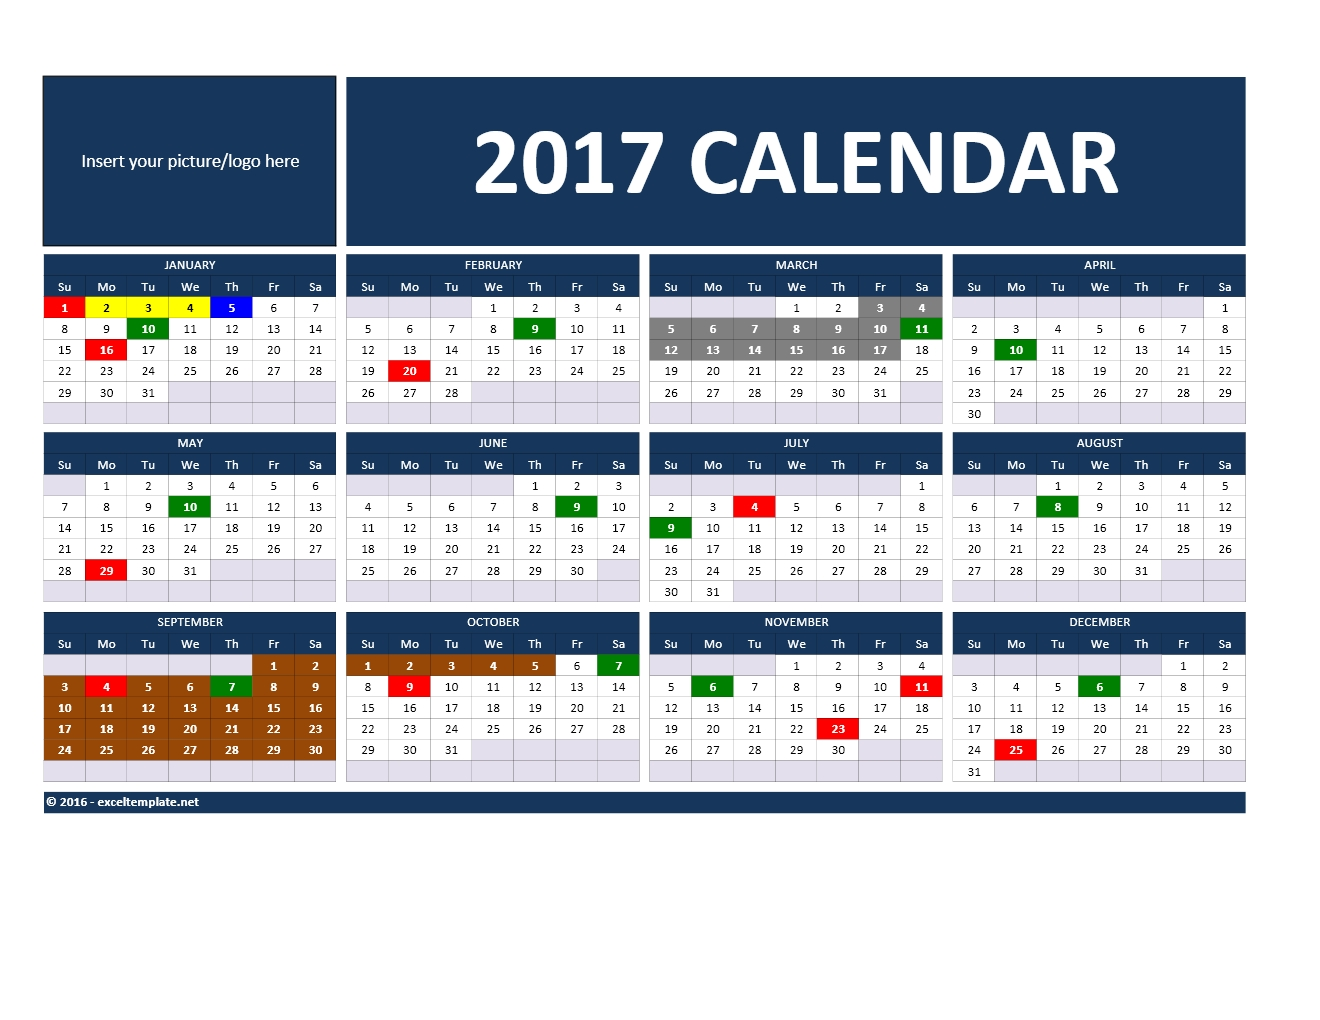 2017 and 2018 calendars excel templates 2017 calendar template model 1 saigontimesfo